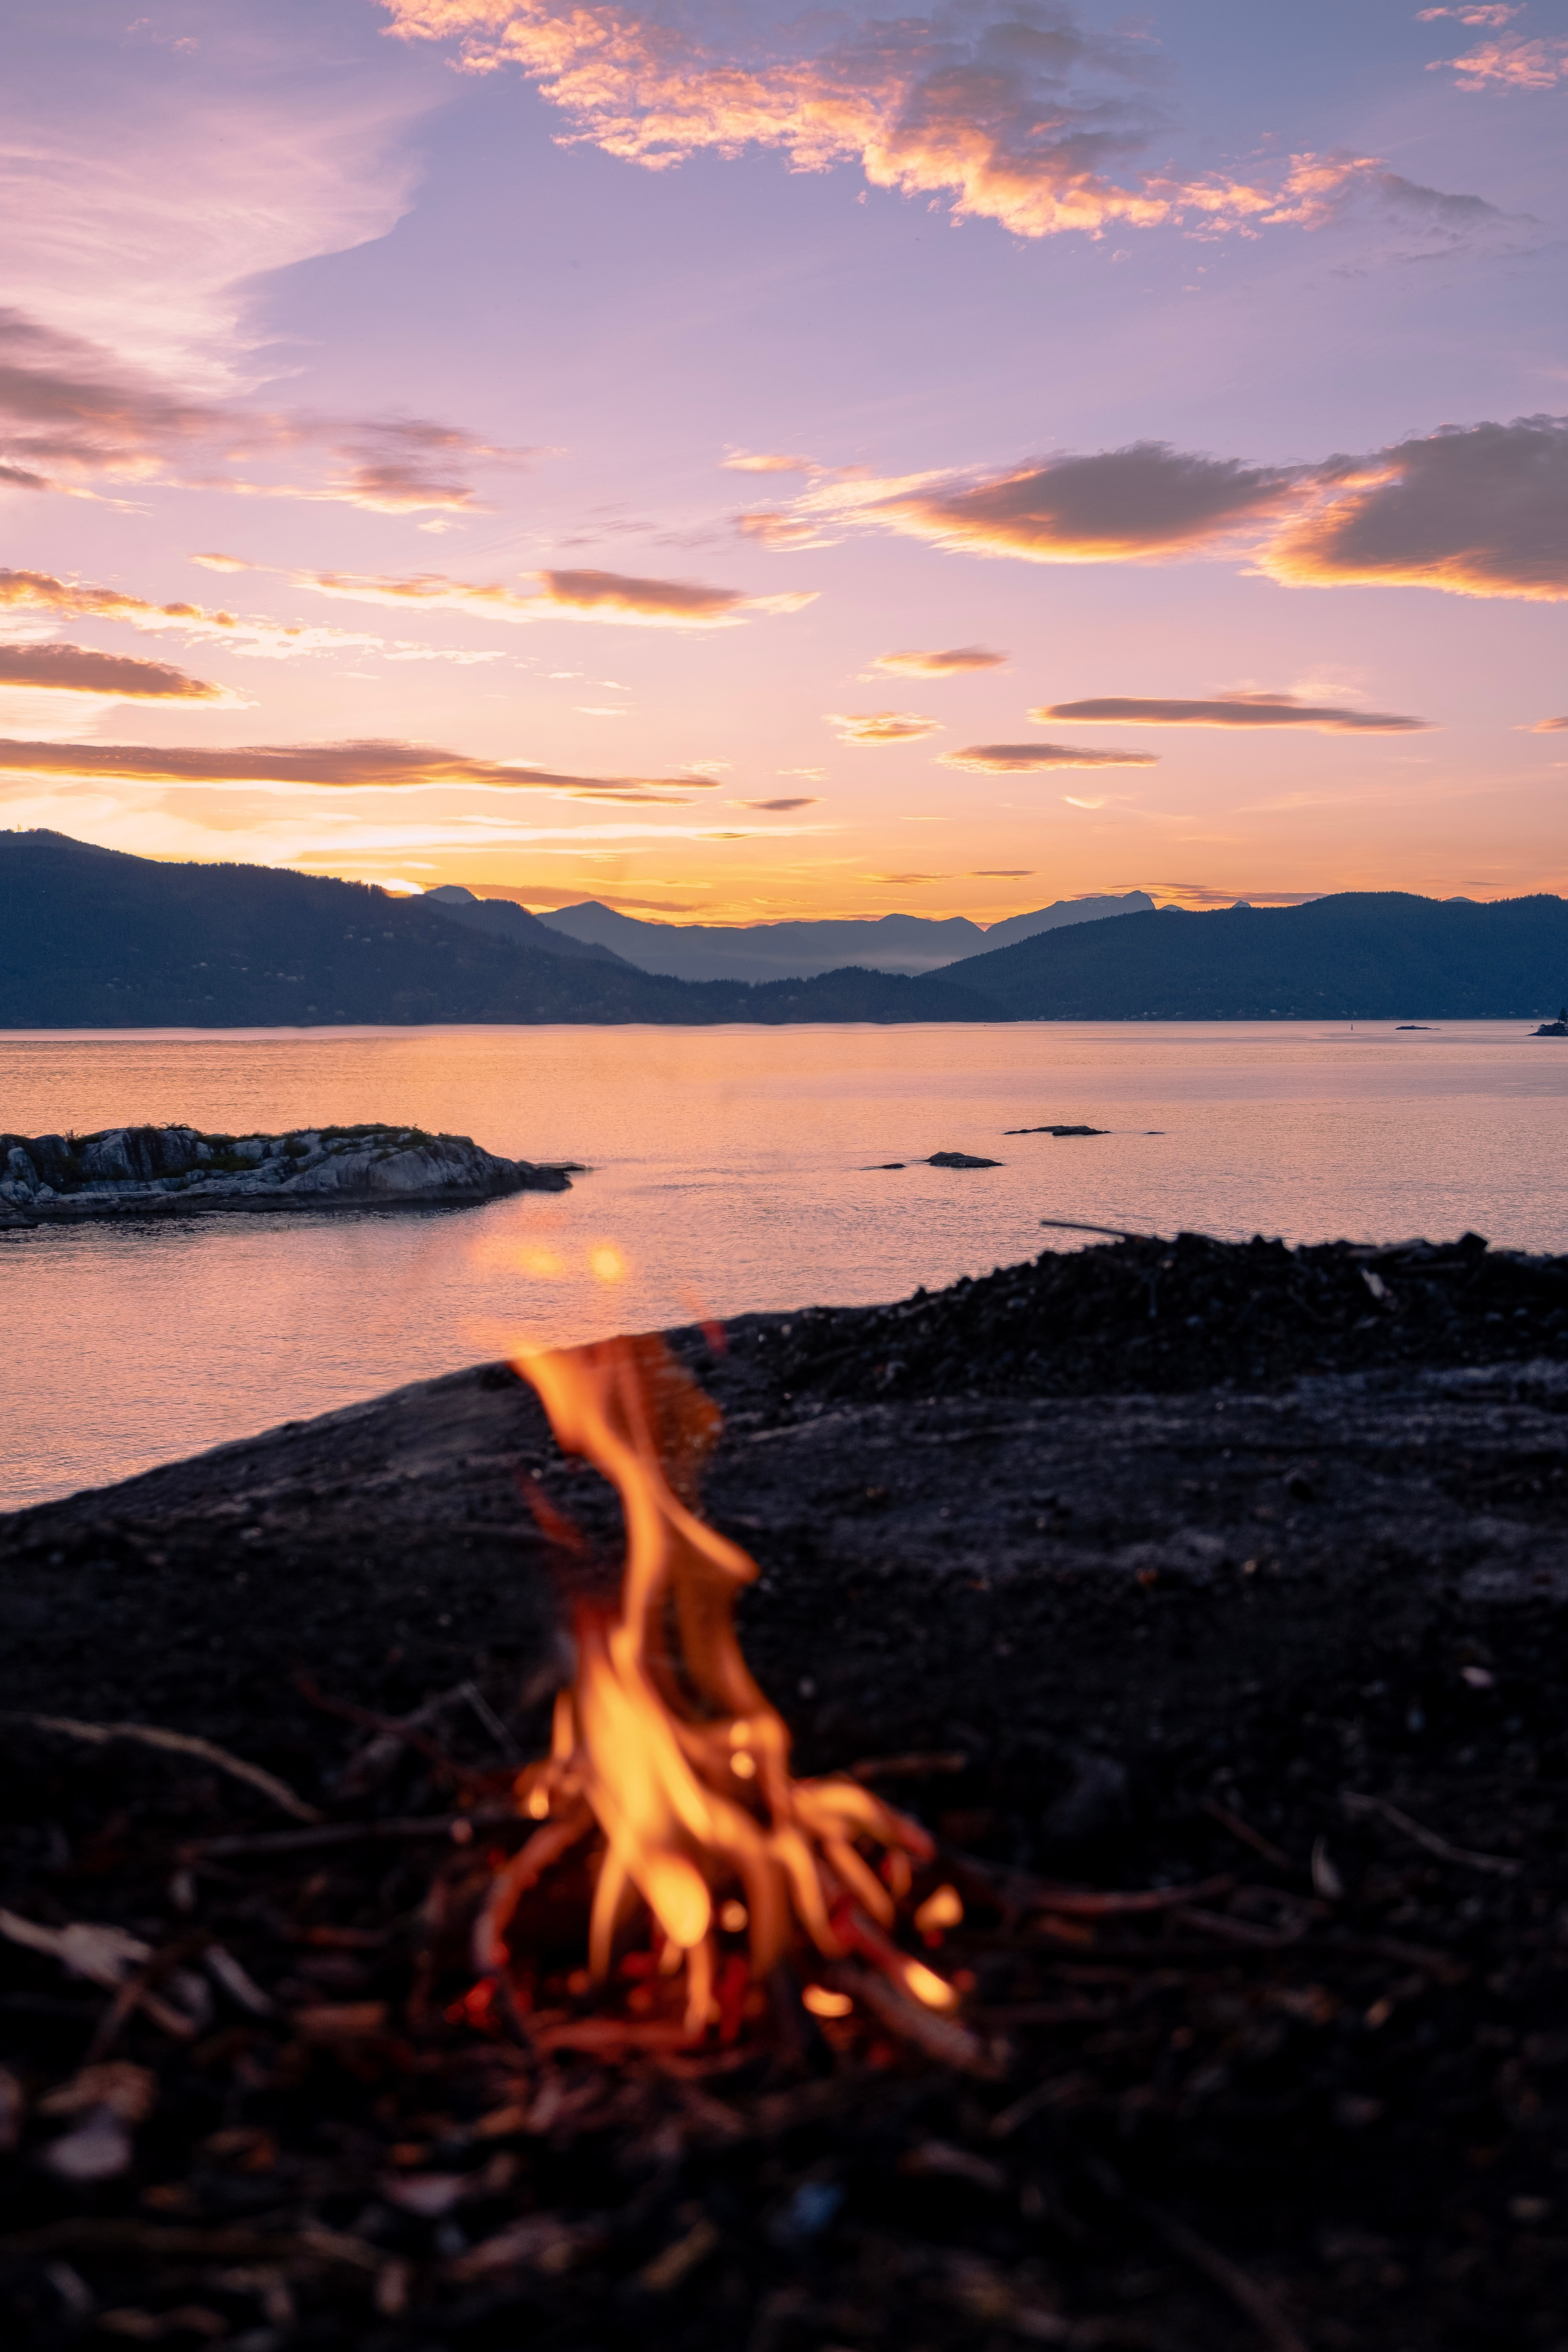 69107 download wallpaper Camping, Sunset, Mountains, Sea, Fire, Bonfire, Miscellanea, Miscellaneous, Campsite screensavers and pictures for free